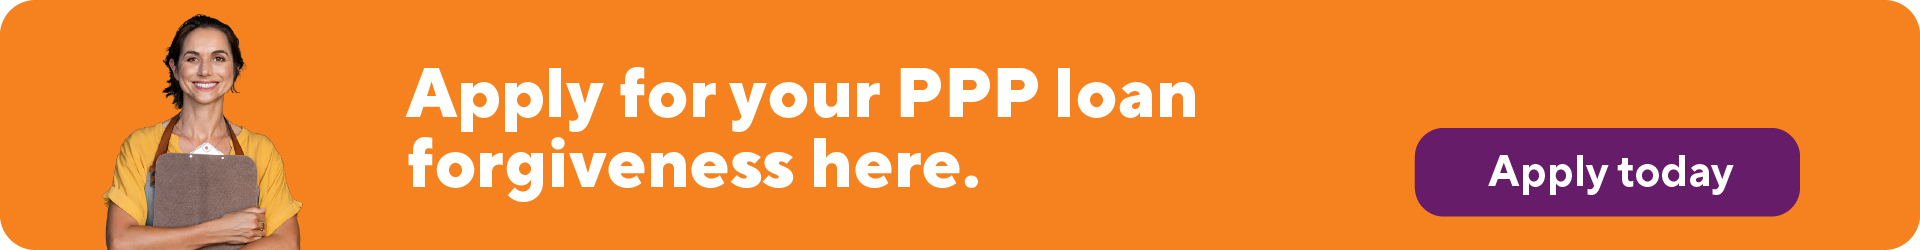 Apply for your PPP loan forgiveness here.